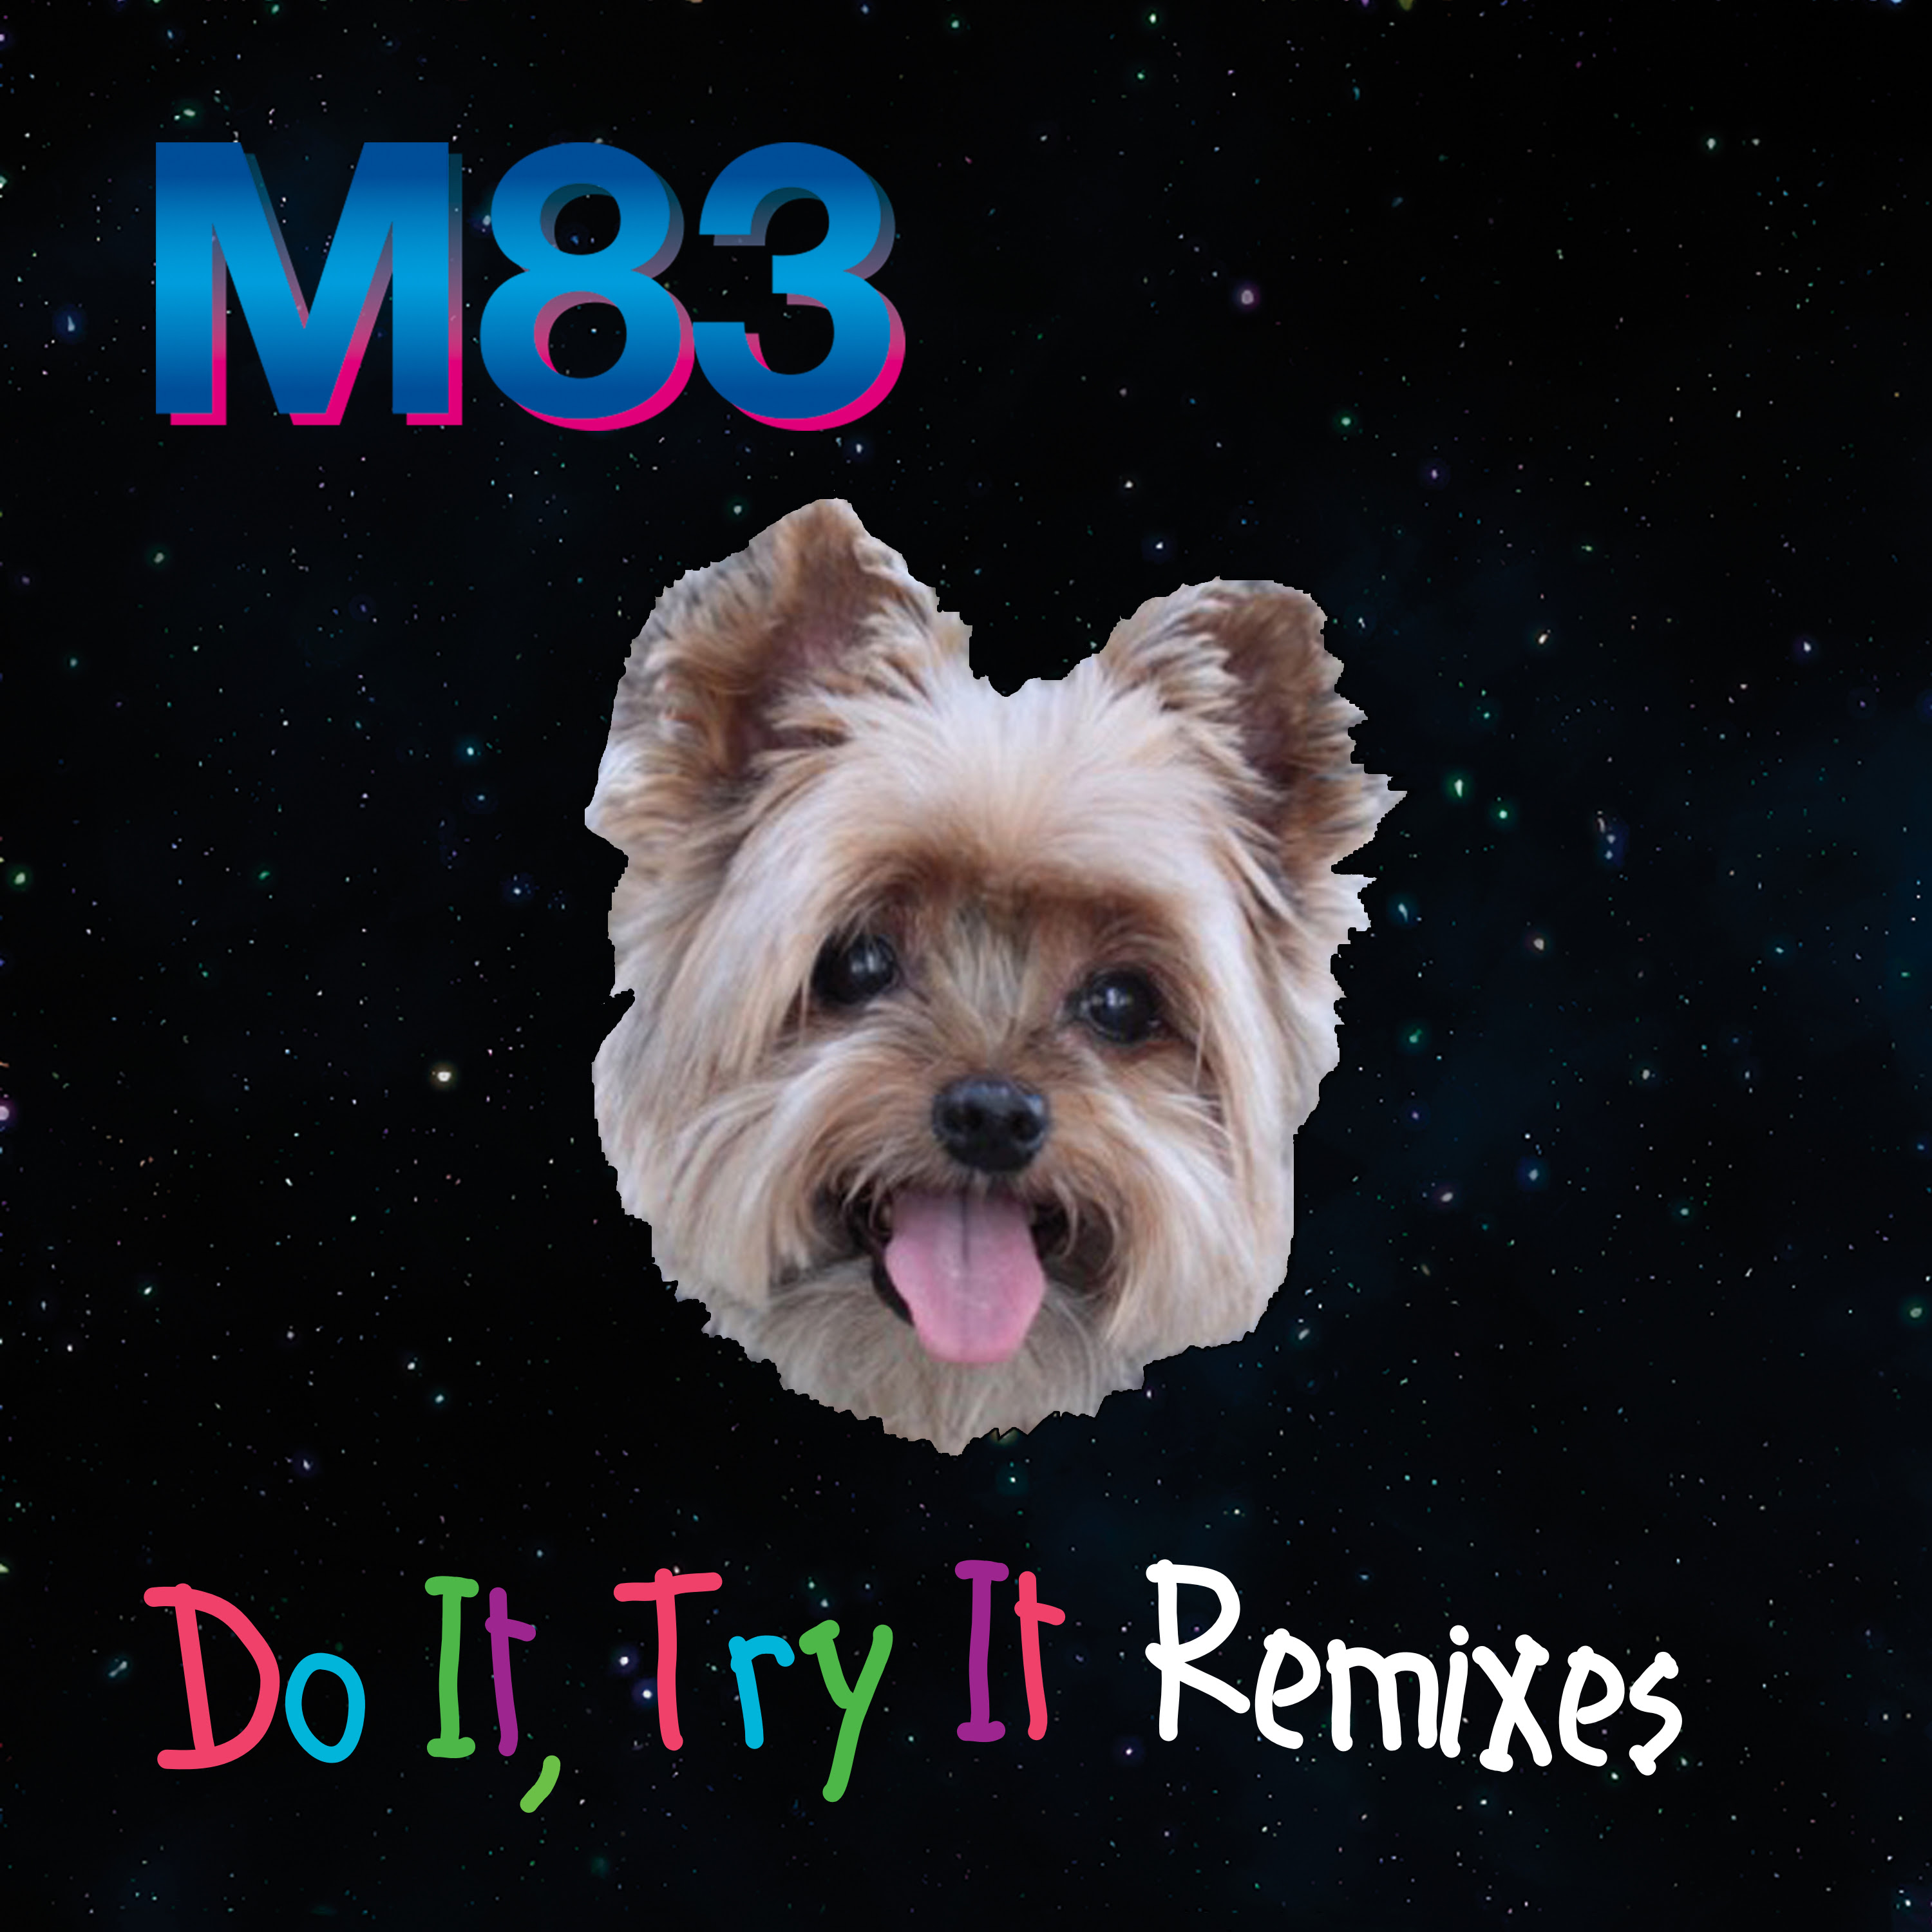 """M83 releases """"Do It, Try It"""" TEPR remix, the track comes off his 'Do It, Try It' remixes, out June 10th on Mute records,"""